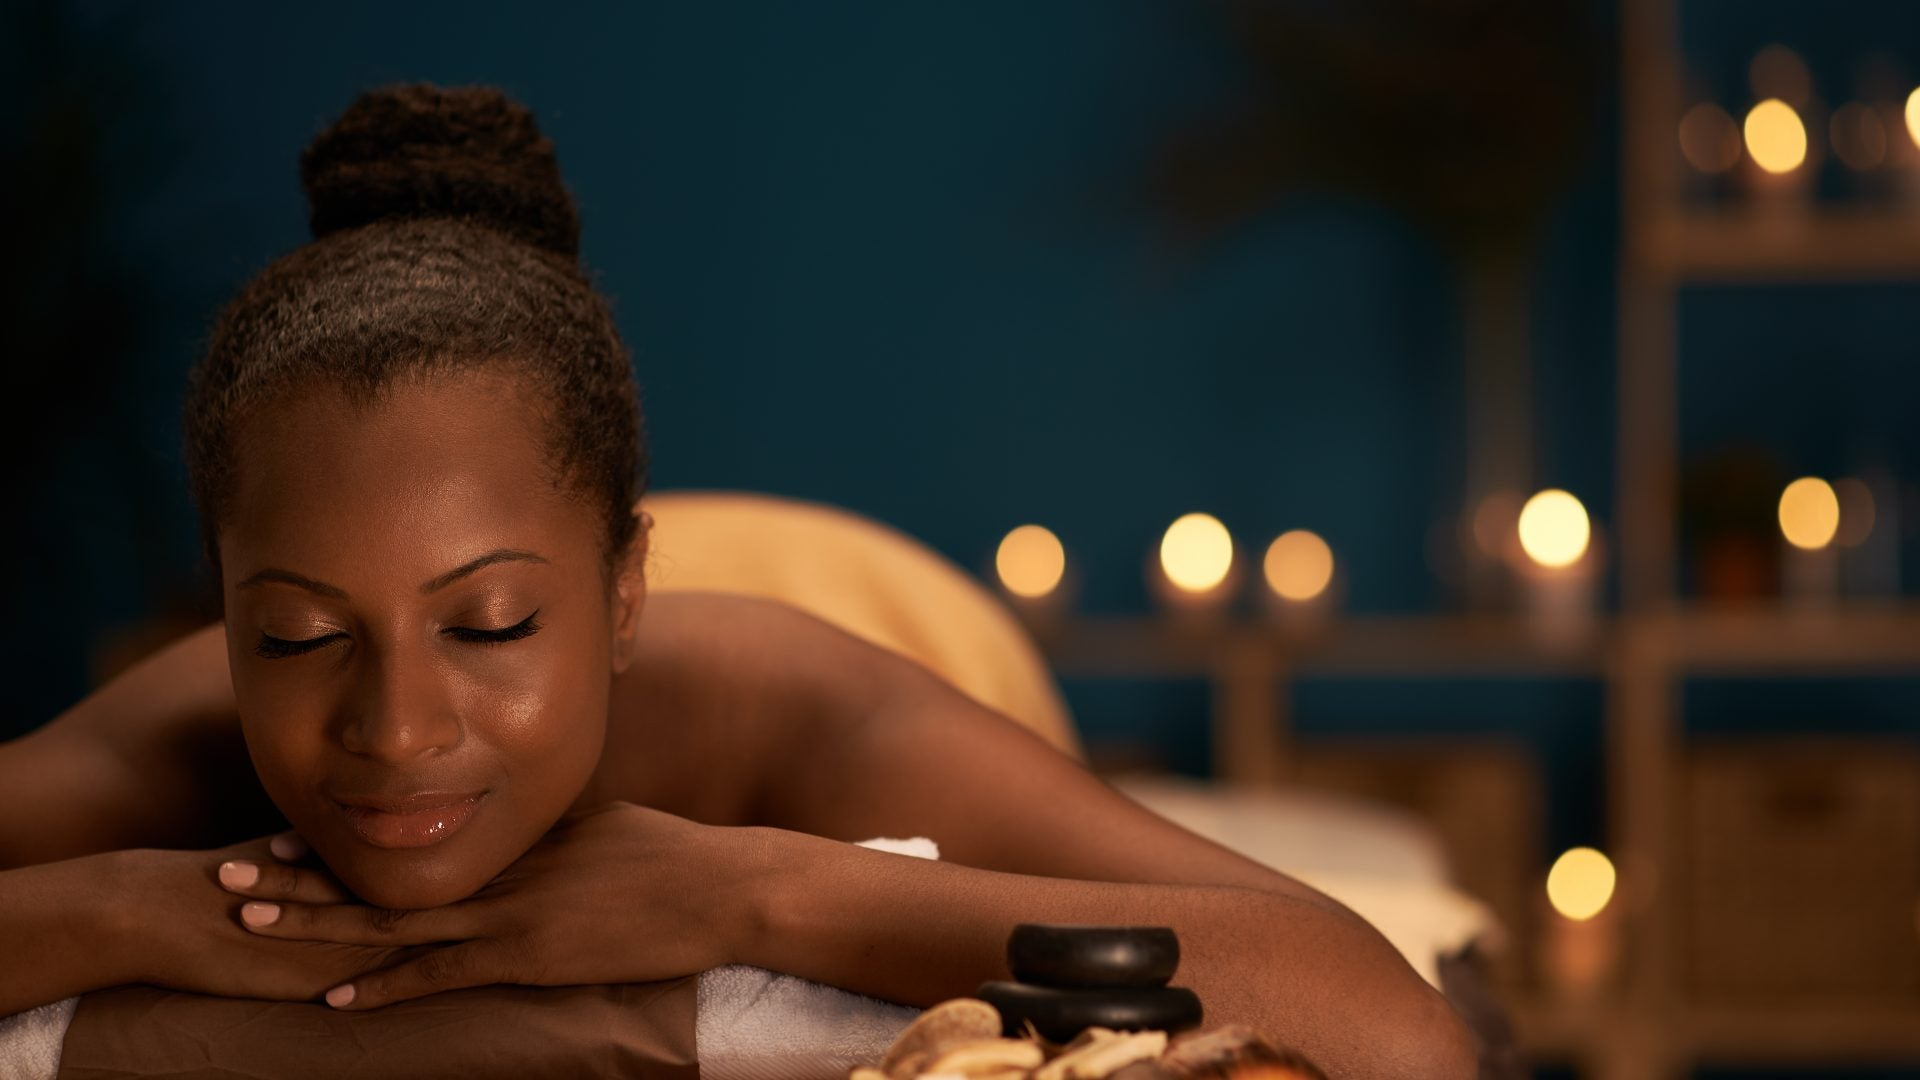 Destination Wellness! Check-in To Relaxation At These Luxurious Hotel Spas